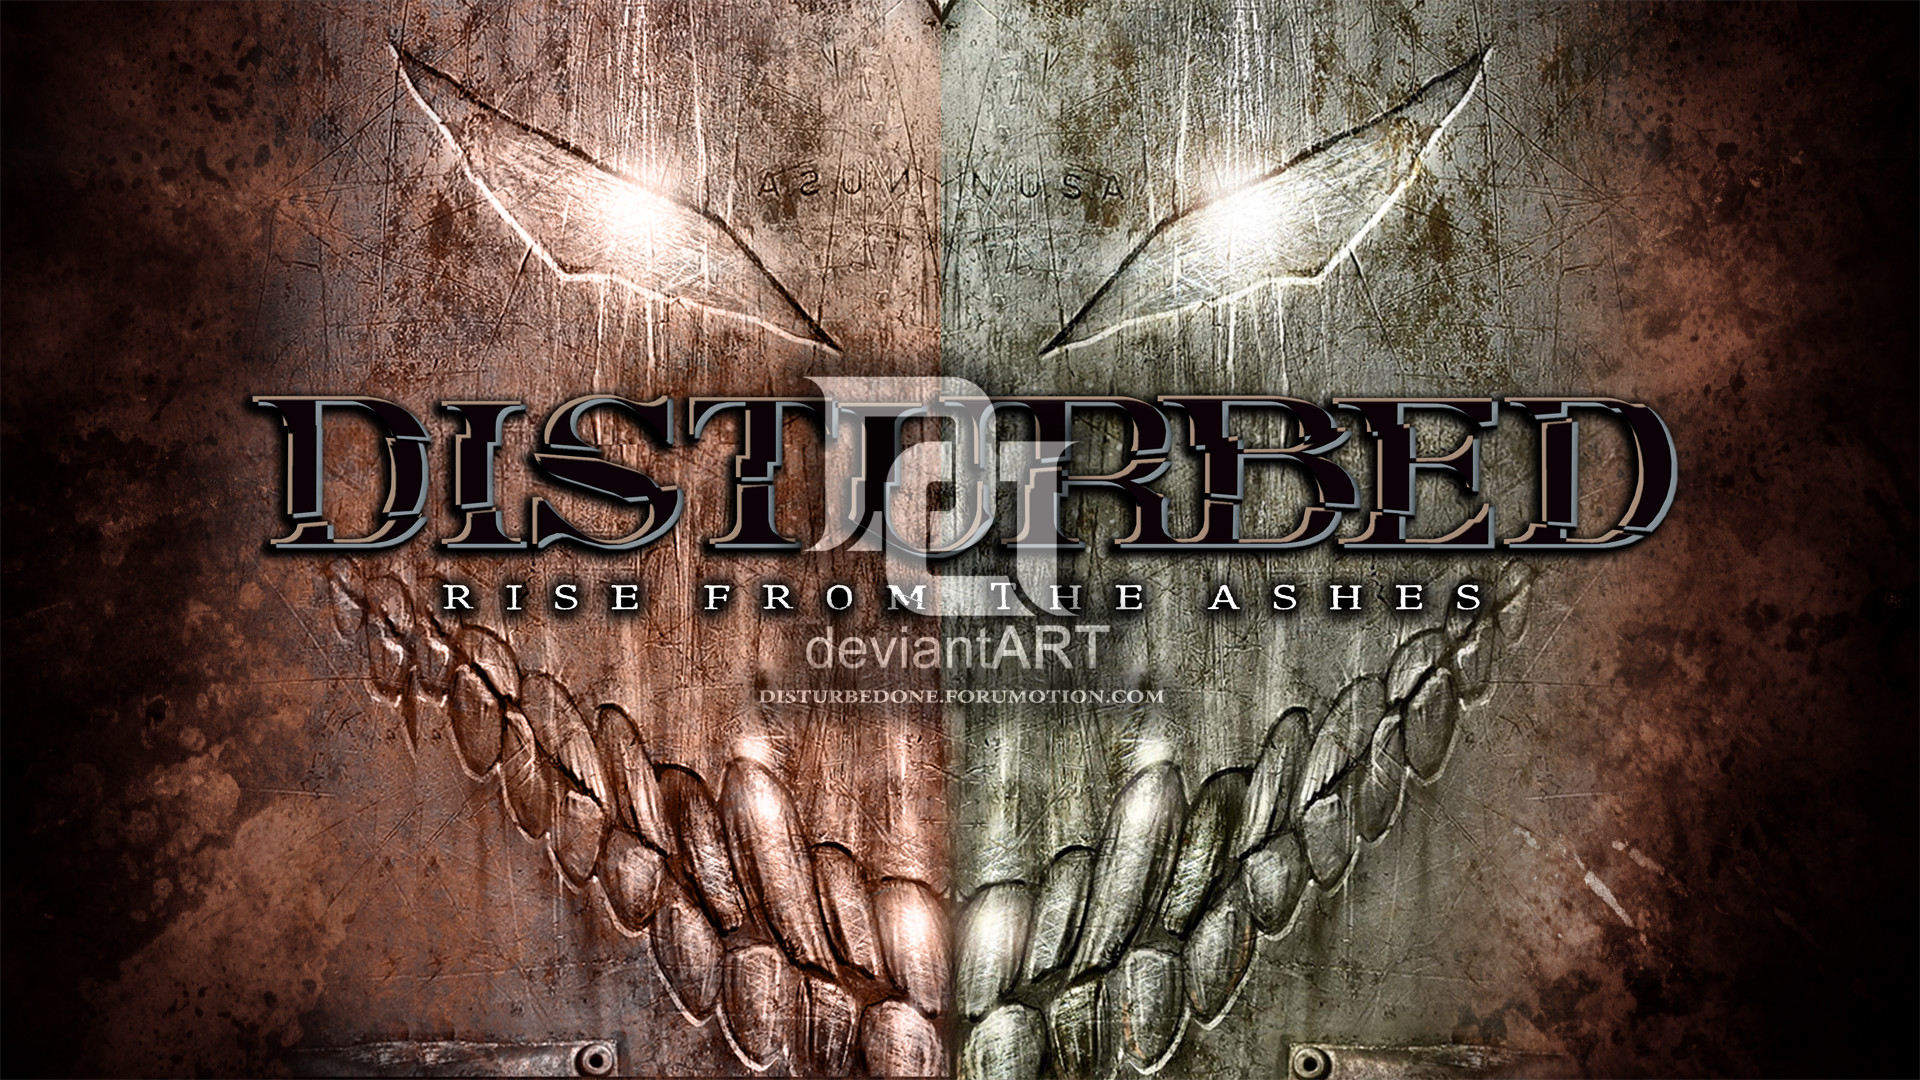 … morbustelevision2 Disturbed – Rise From The Ashes by morbustelevision2